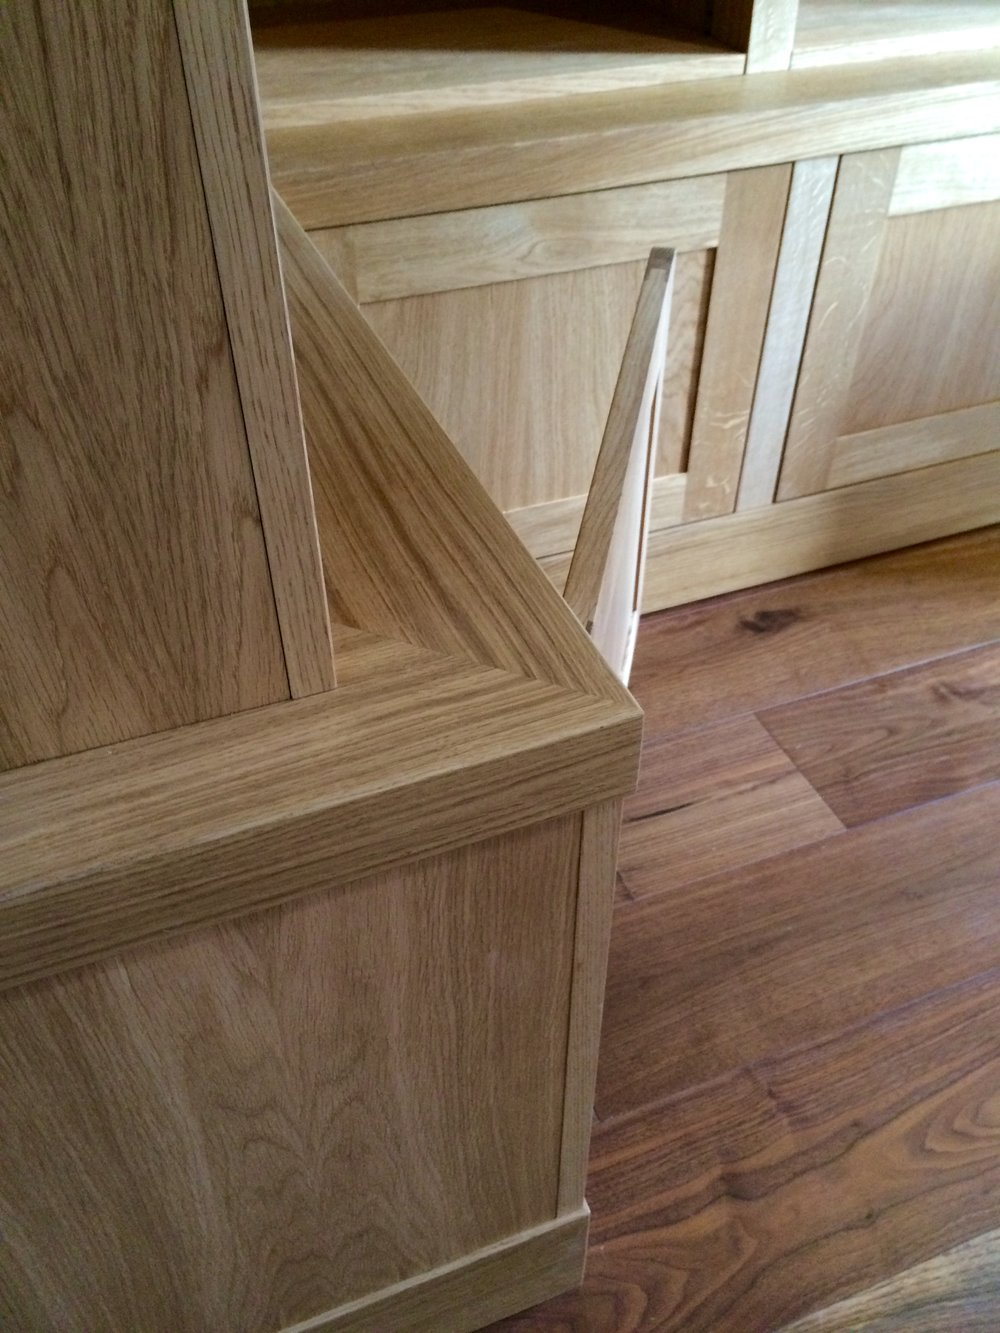 Detail - Attention to detail and perfectly executed joinery set this piece apart.